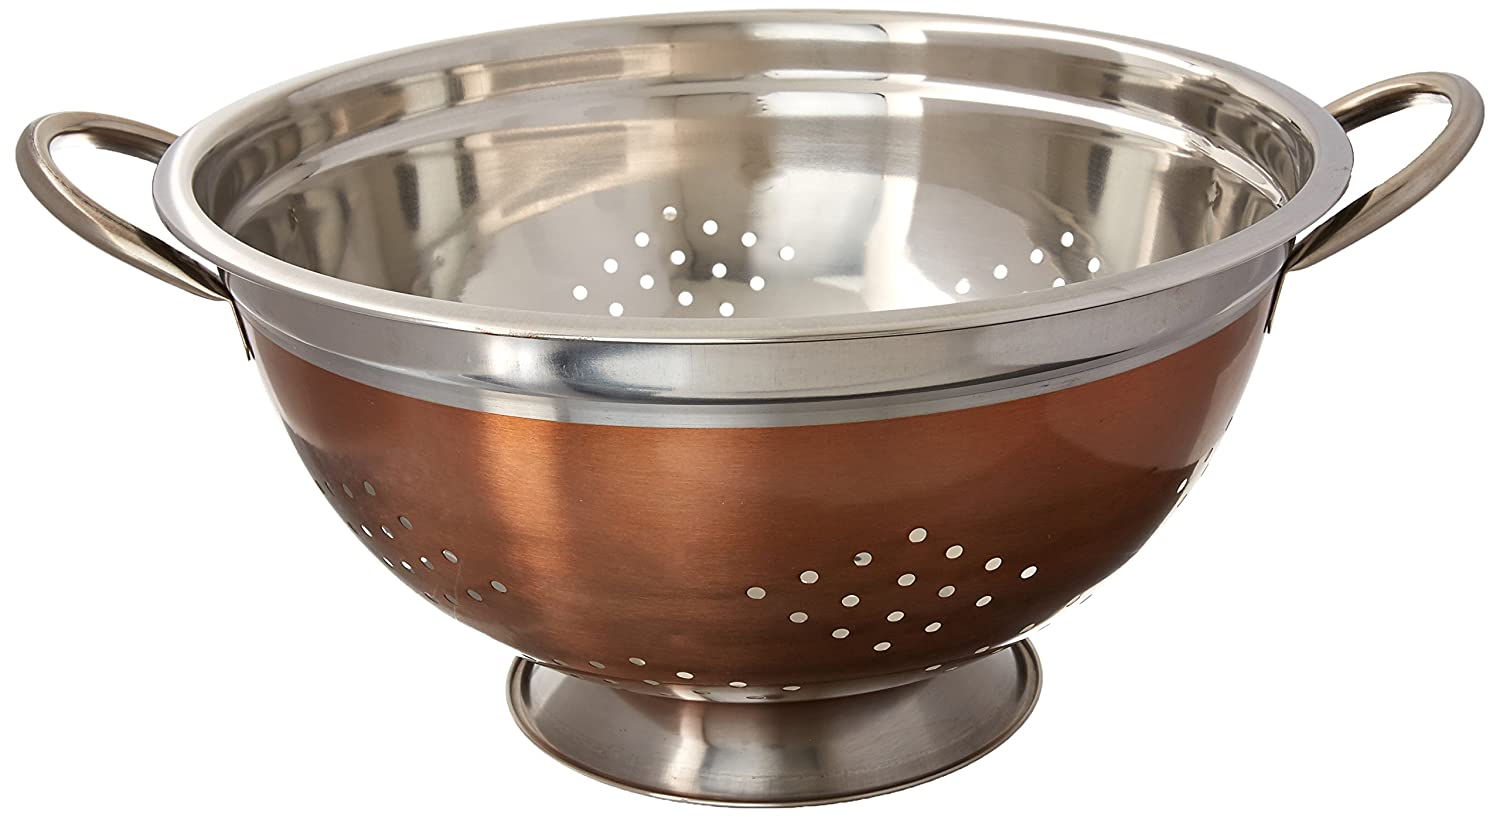 EURO-WARE High Grade Stainless Steel Colander for Pastas or Washing Fruits, Vegetables, Salads and More with Decorative Copper Finish (3 Quart) SS-DK-3503